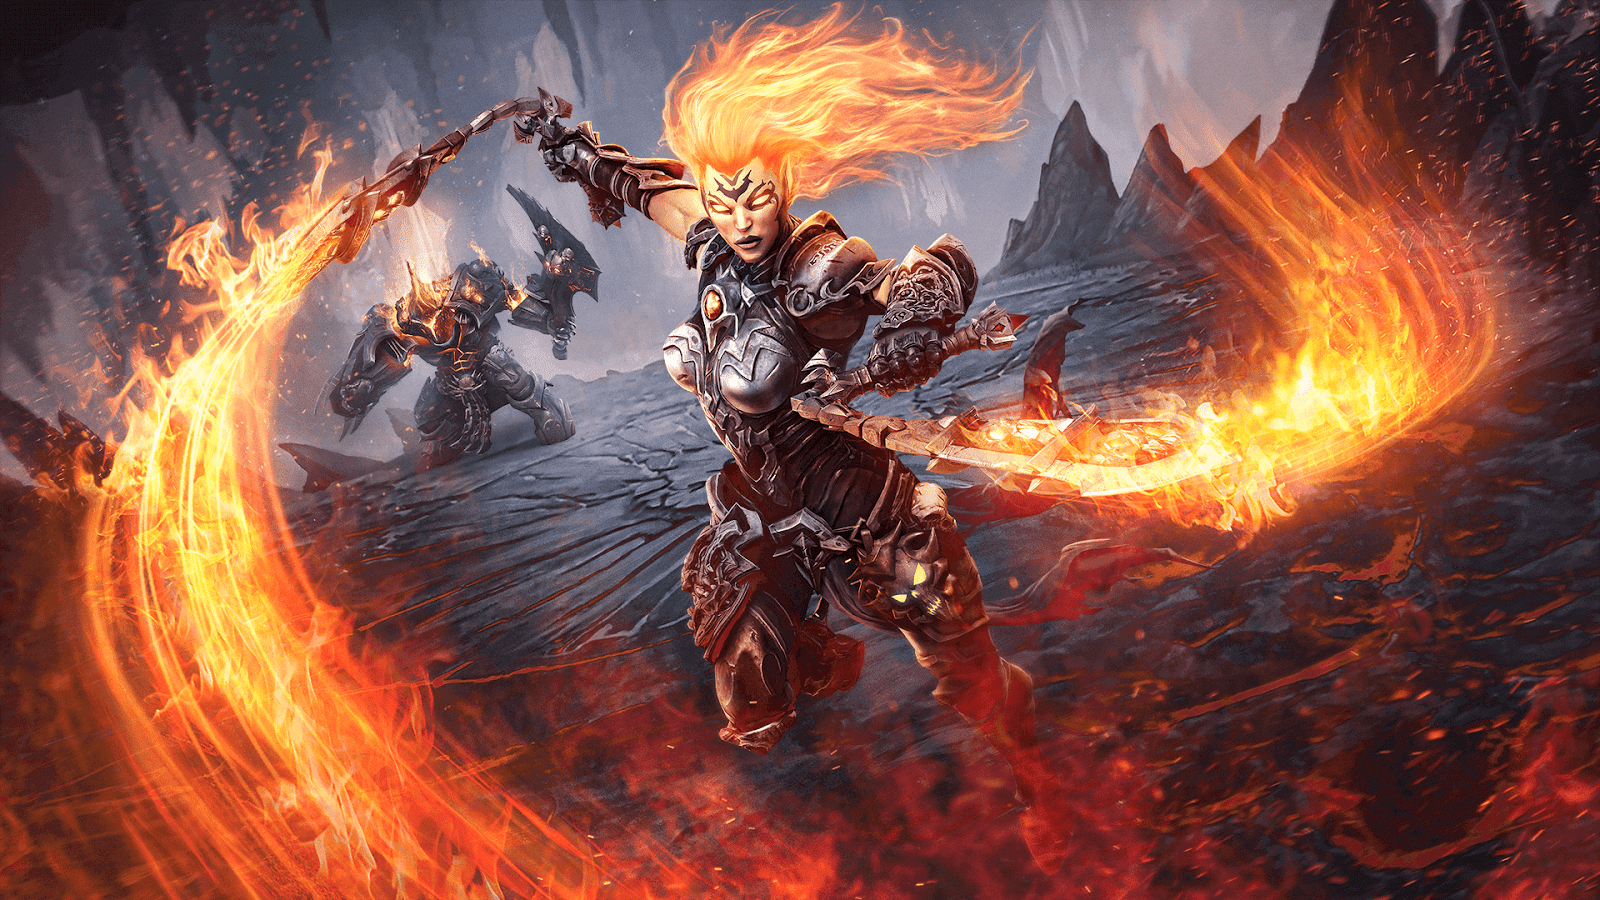 Two DLCS For Darksiders III Announced 'The Crucible' And 'Keepers Of The Void'